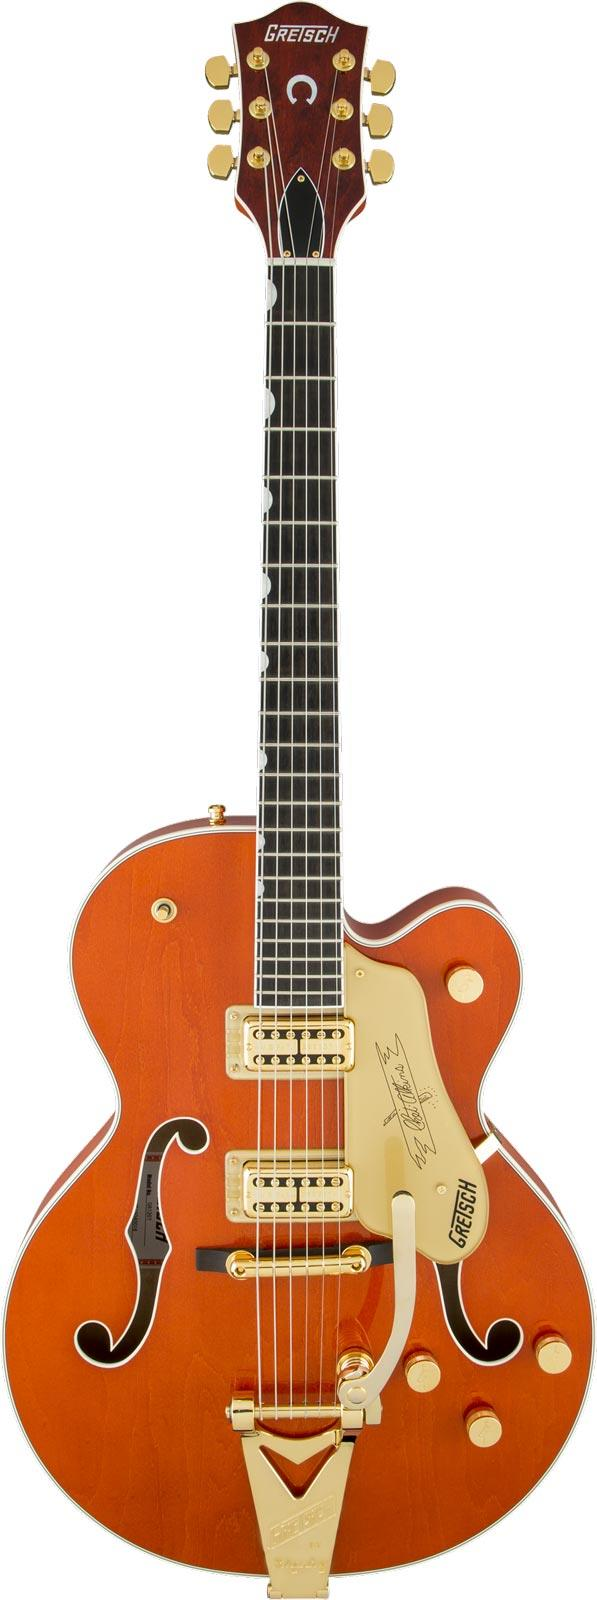 gretsch g6120t players edition nashville bigsby orange stain keymusic. Black Bedroom Furniture Sets. Home Design Ideas